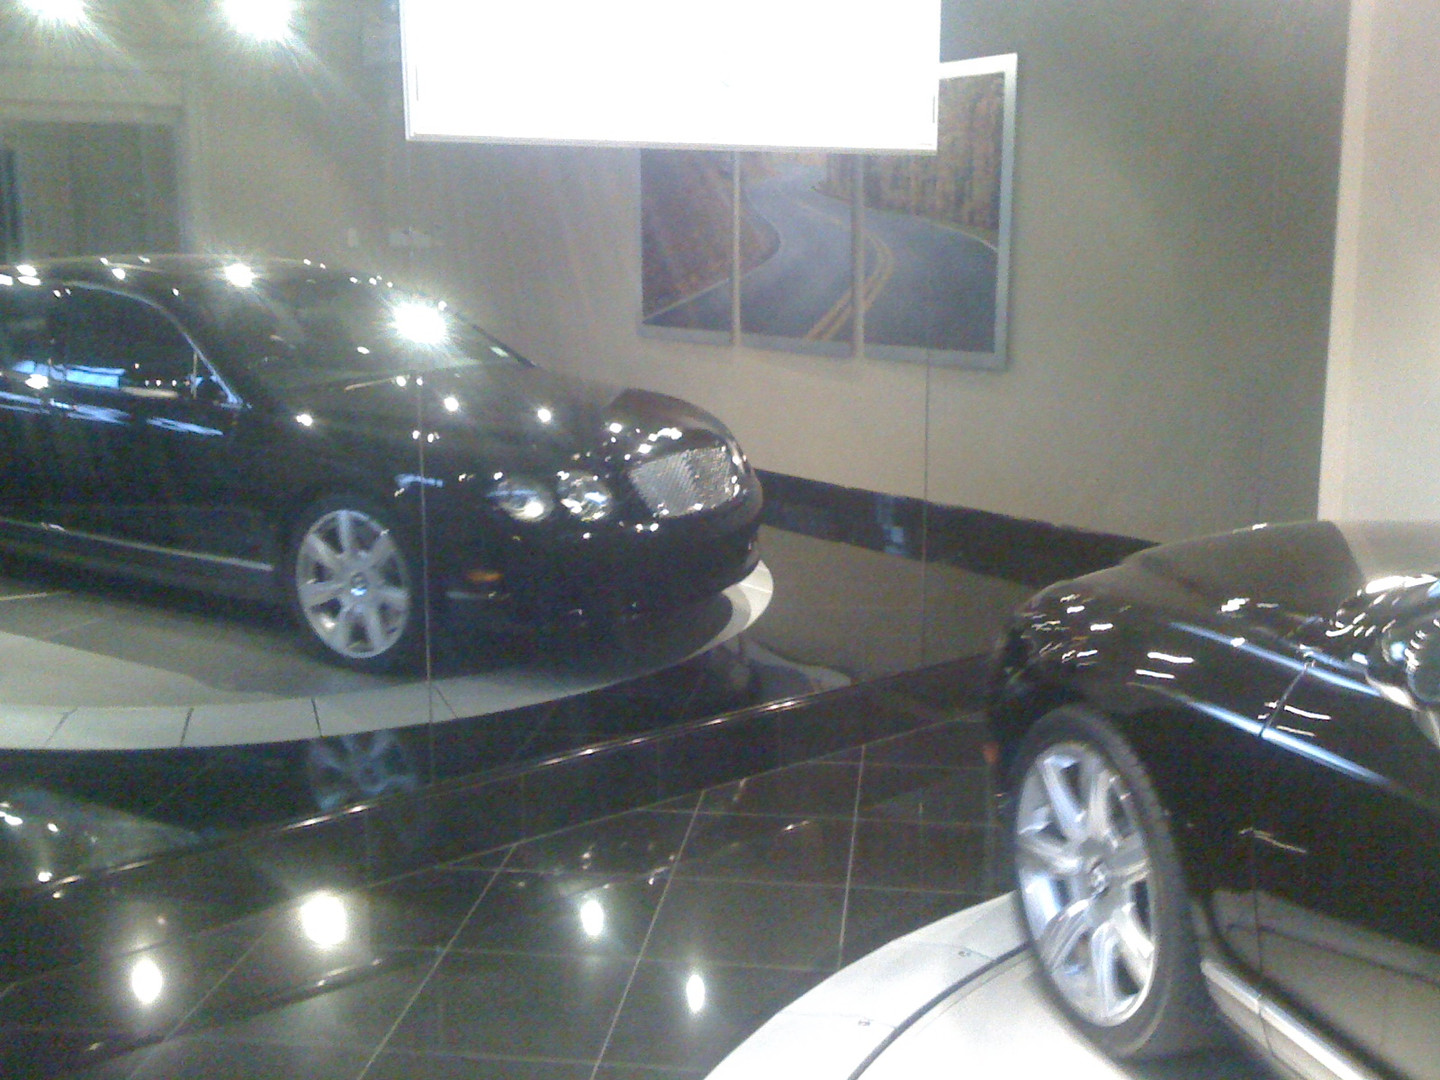 Bentley Flying spur in garage in CT.jpg